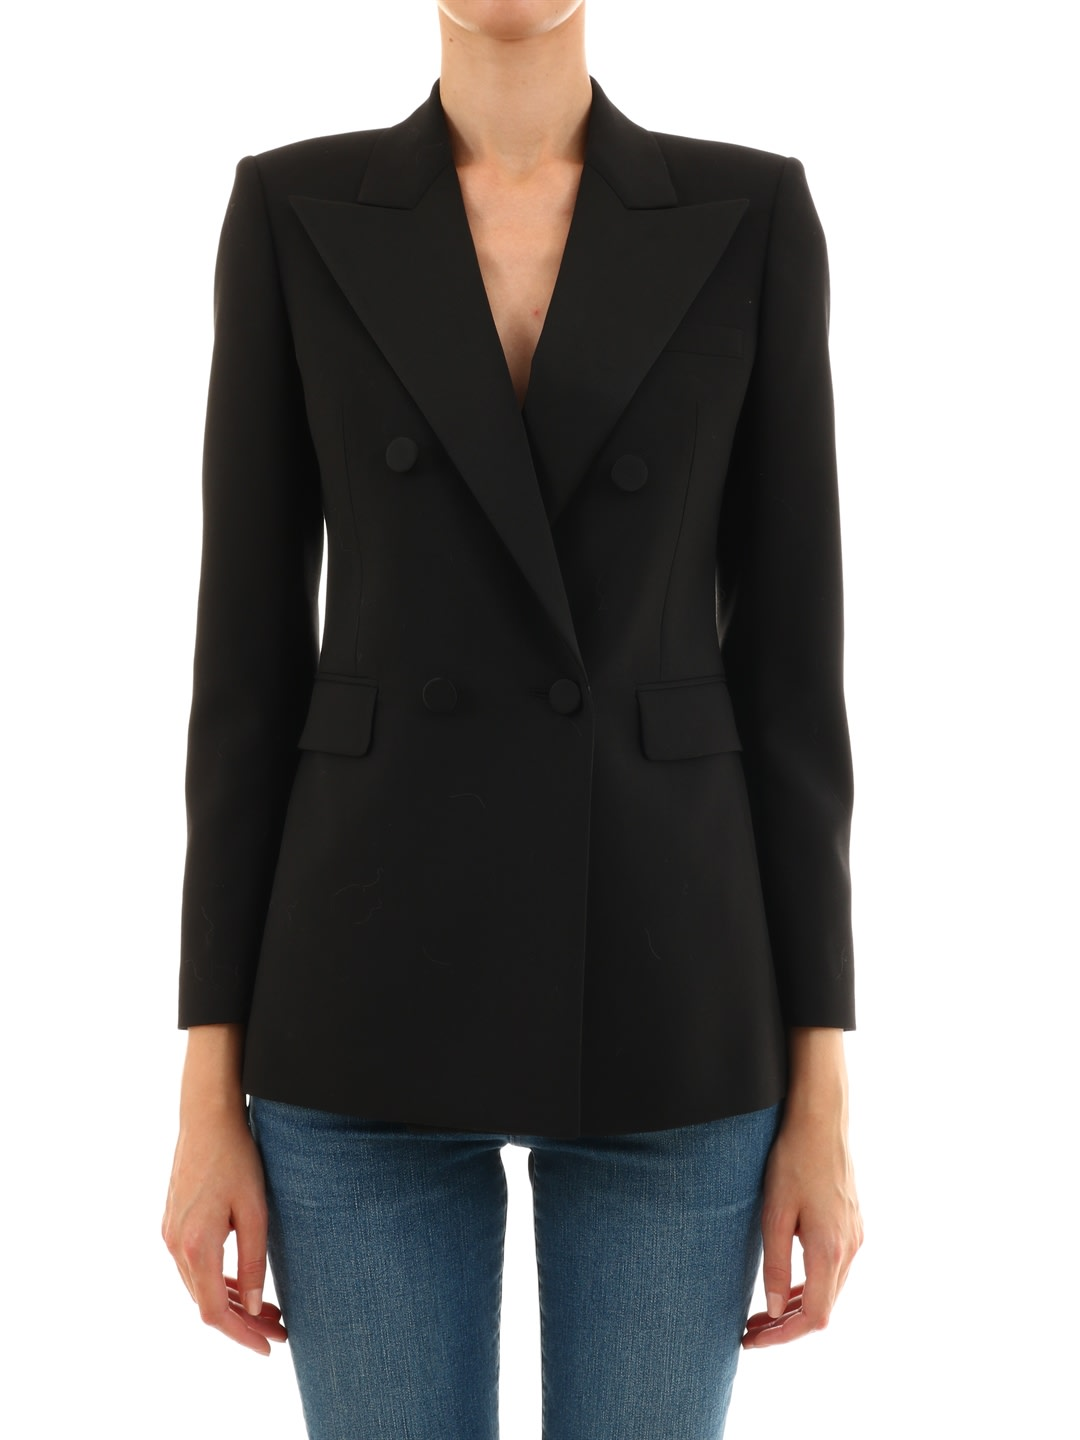 Saint Laurent Black Wool Blazer